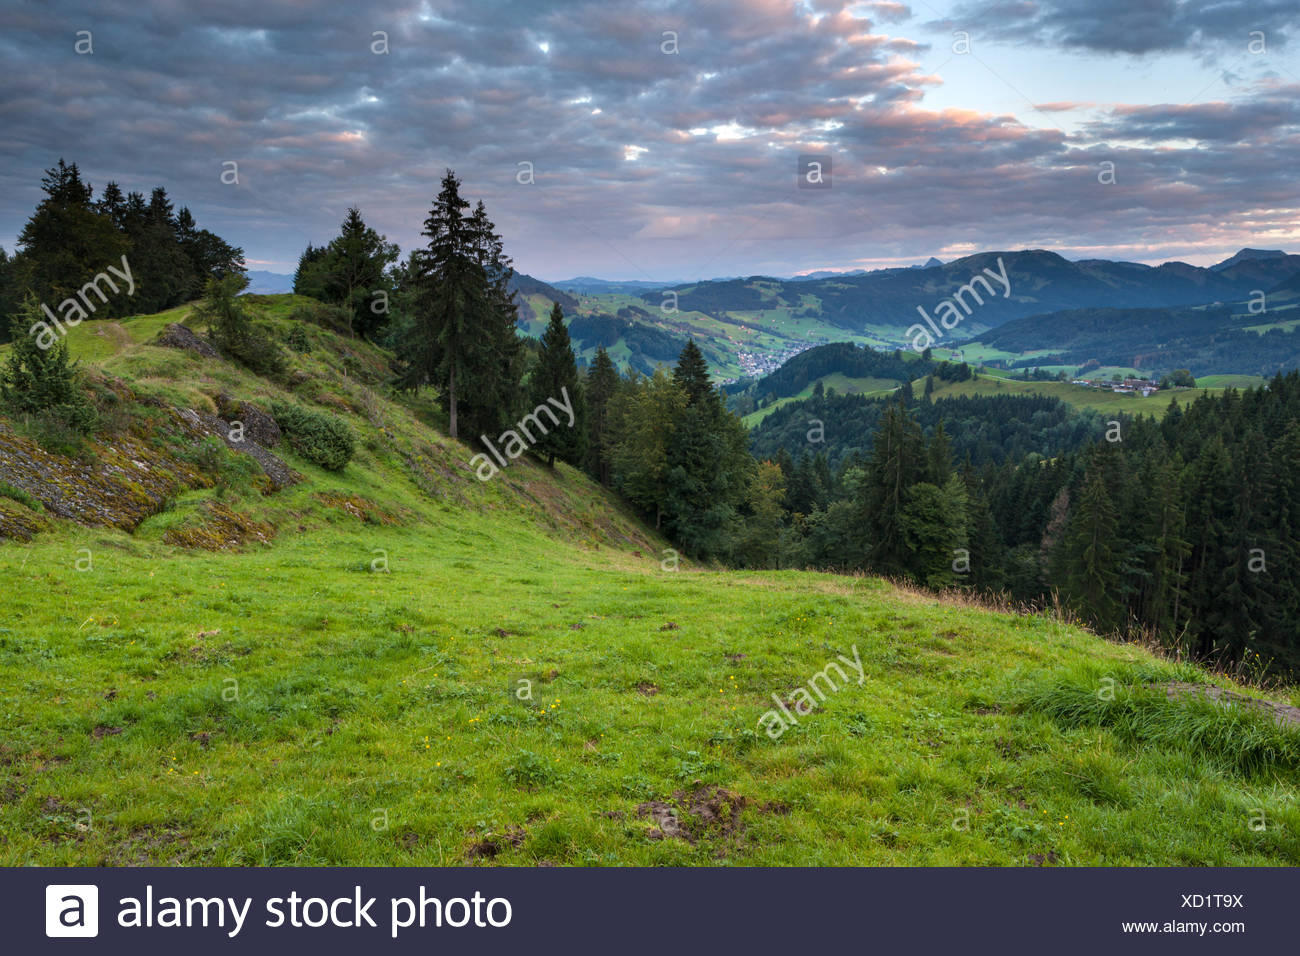 View, Hundwiler Höhe, Hundwil height, Switzerland, Europe, canton, Appenzell, Ausserrhoden, wood, forest, spruces, morning light - Stock Image